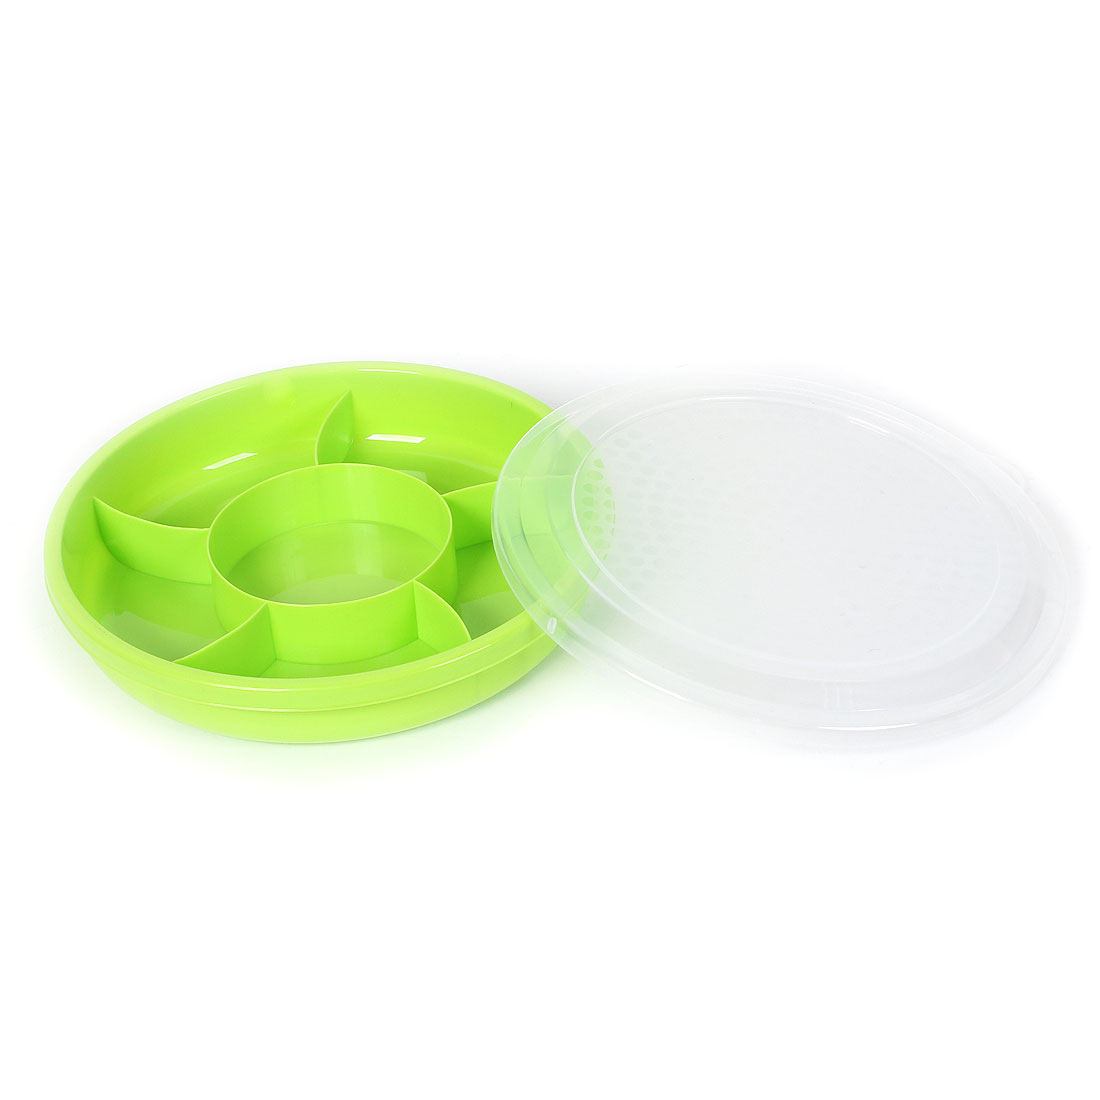 Plastic 6 Separate Compartments Sealed Candy Nut Snacks Case Box Storage Green